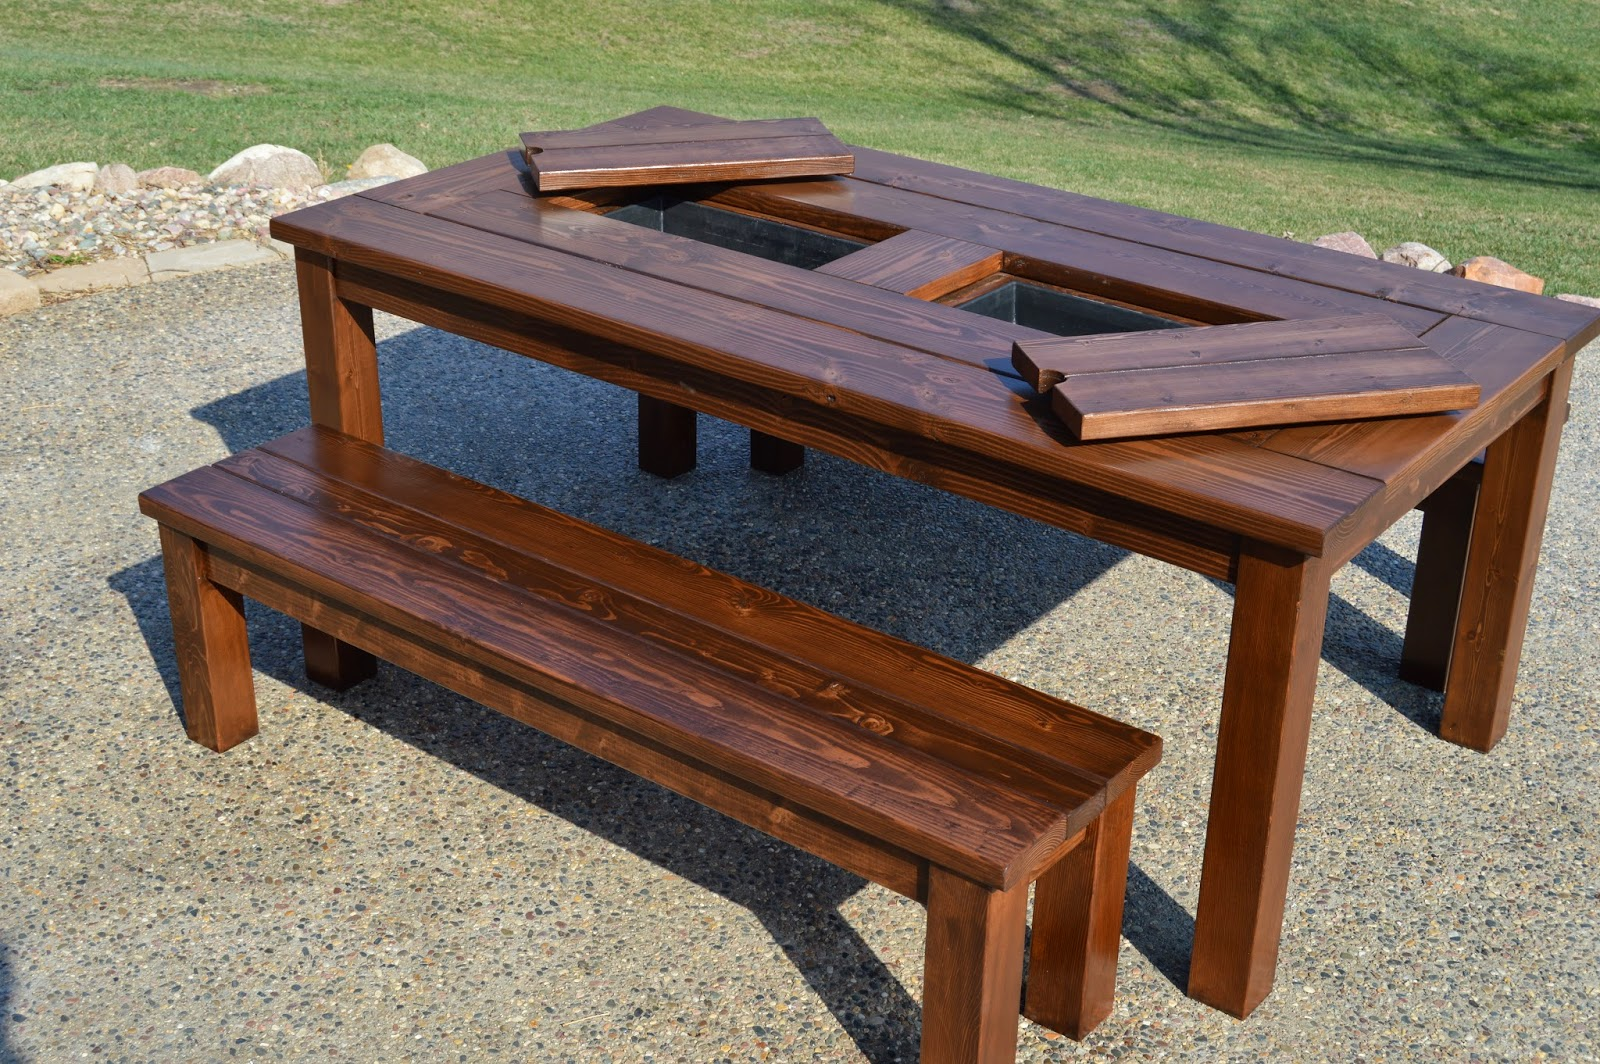 Kruse 39 s workshop patio party table with built in beer Picnic table with cooler plans